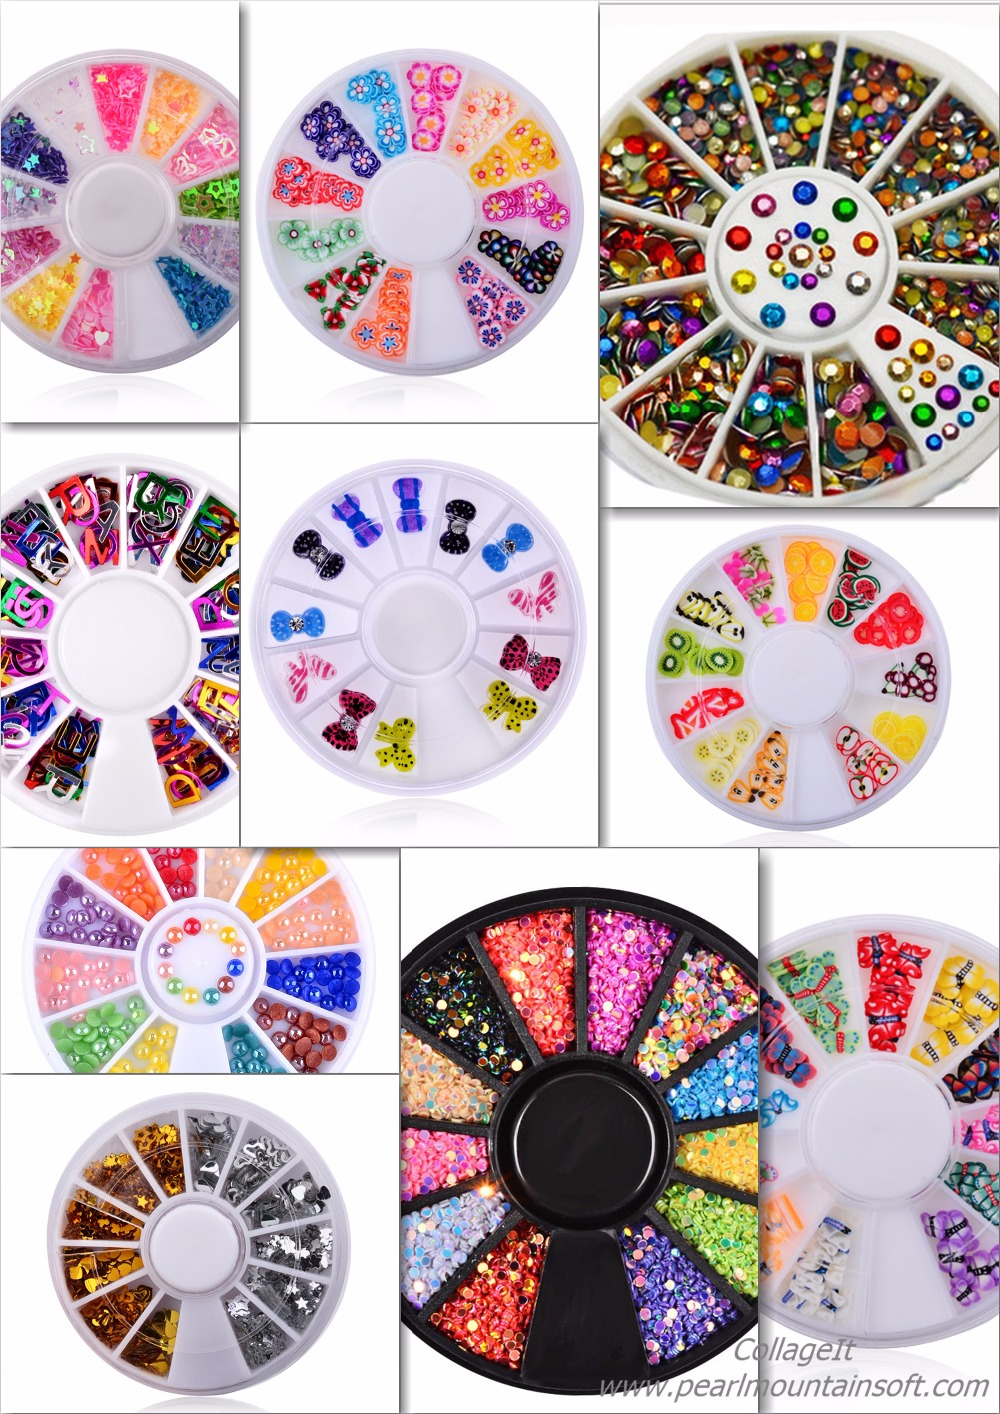 3D Cystal Colourful Nail Art Decoration Wheel,Harf Pearl Stone Sequins Nail Art Rhinestones Different shapes Manicure Supplies